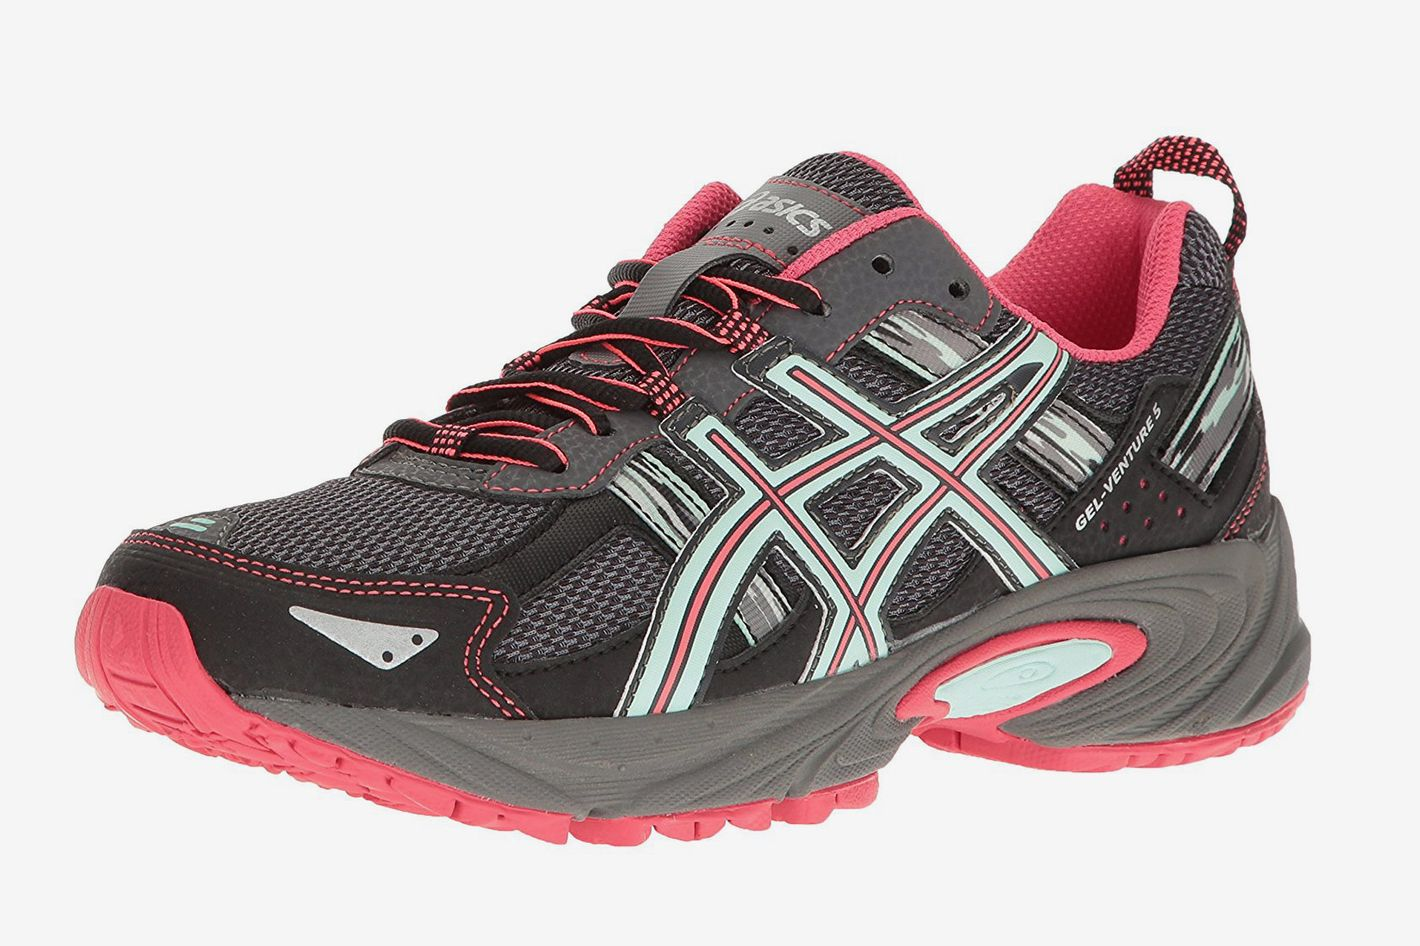 18 Best Running Shoes And Workout Shoes For Women 2018